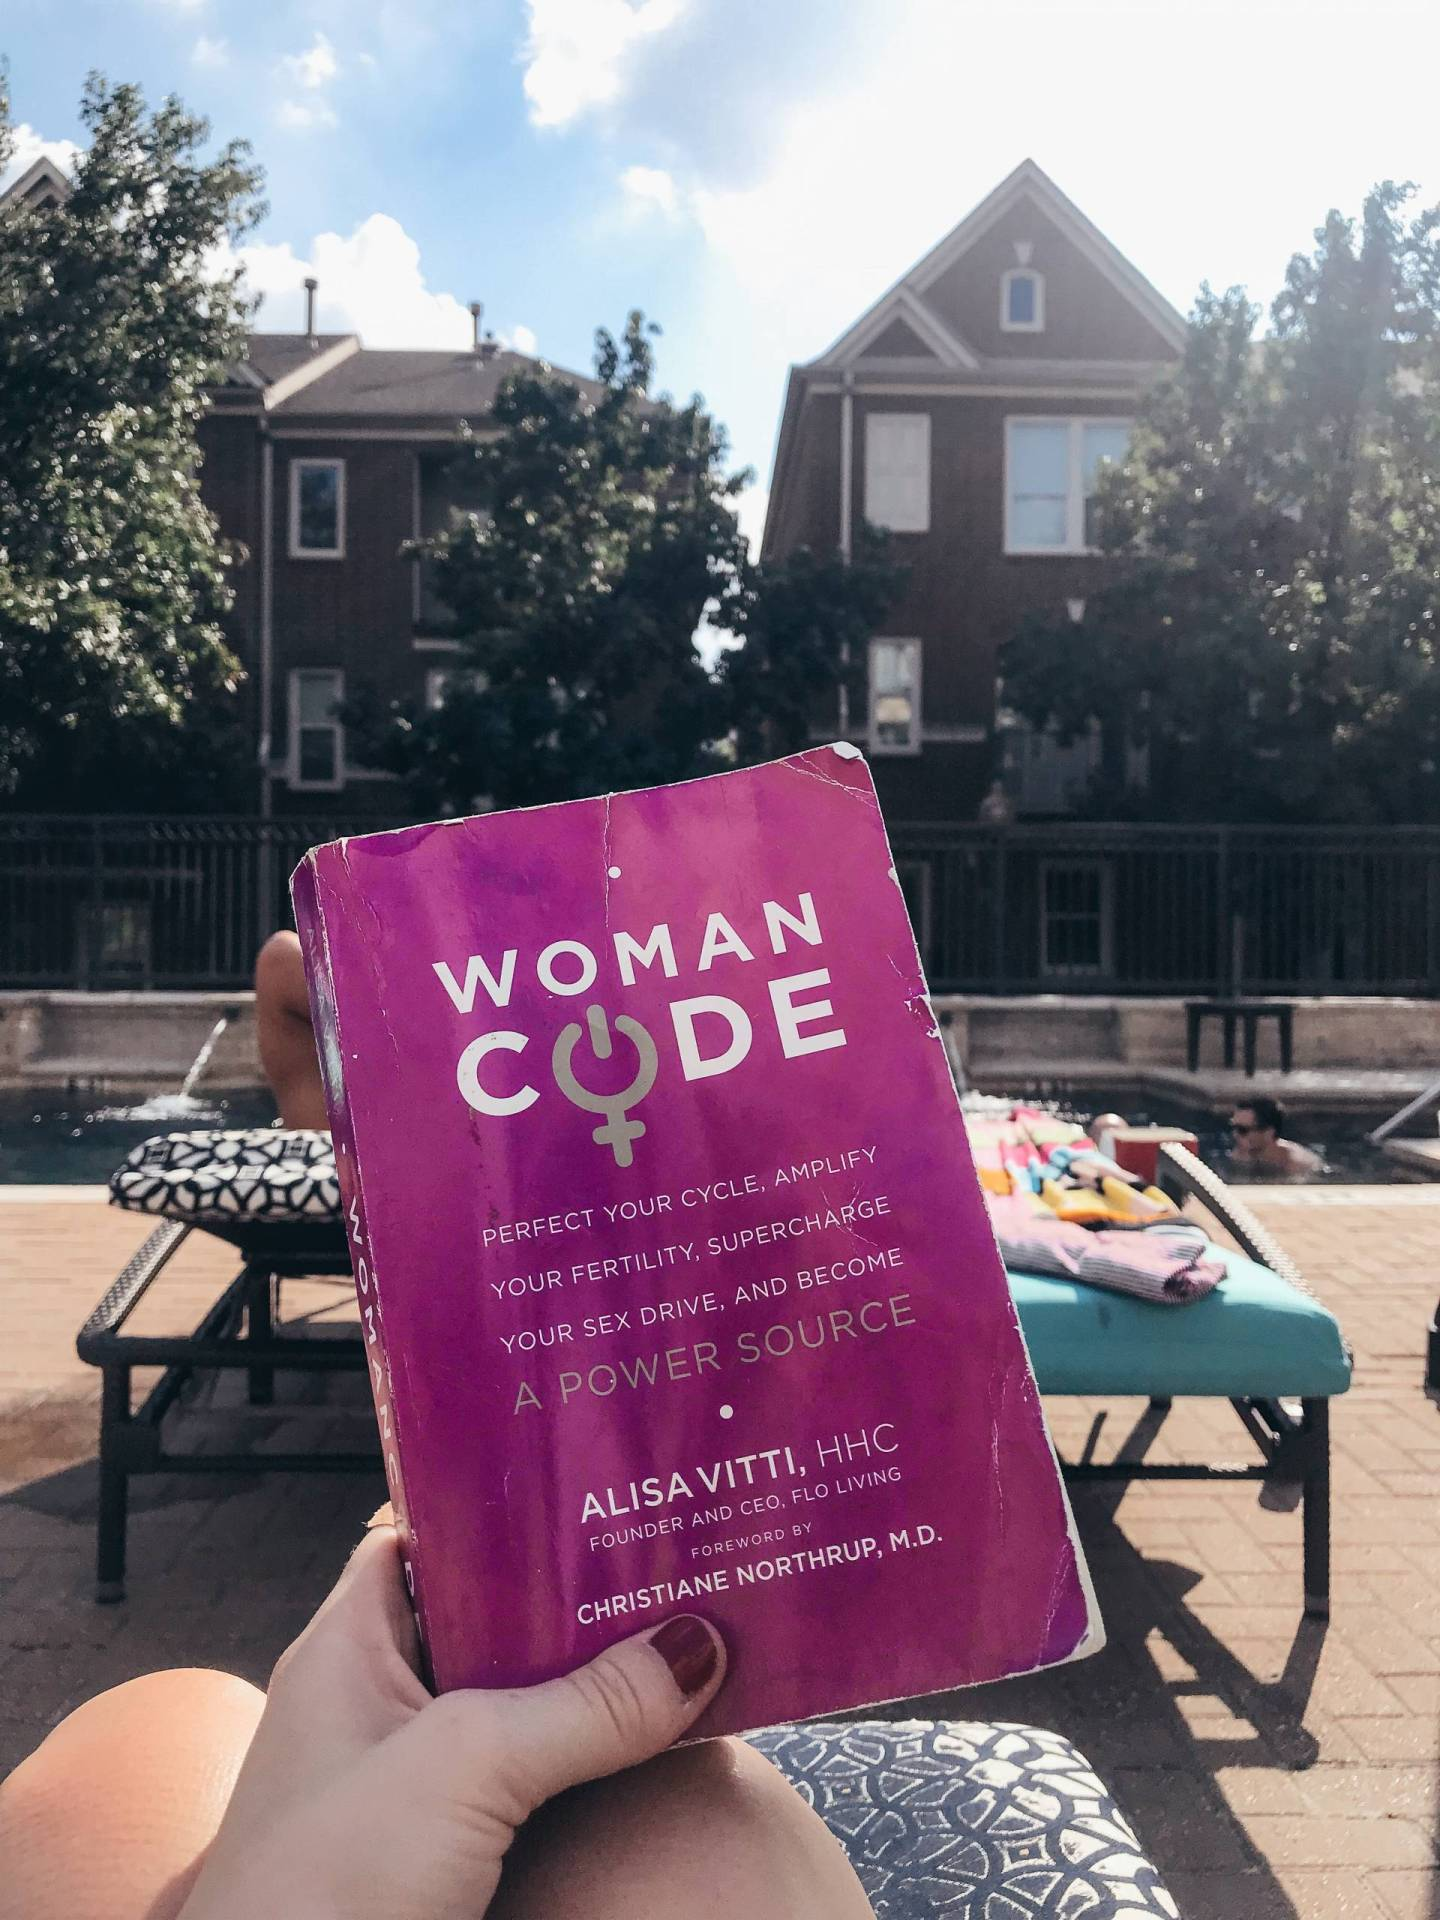 How WomanCode by Alisa Vitti Changed by Life for the Better (no, BEST!)